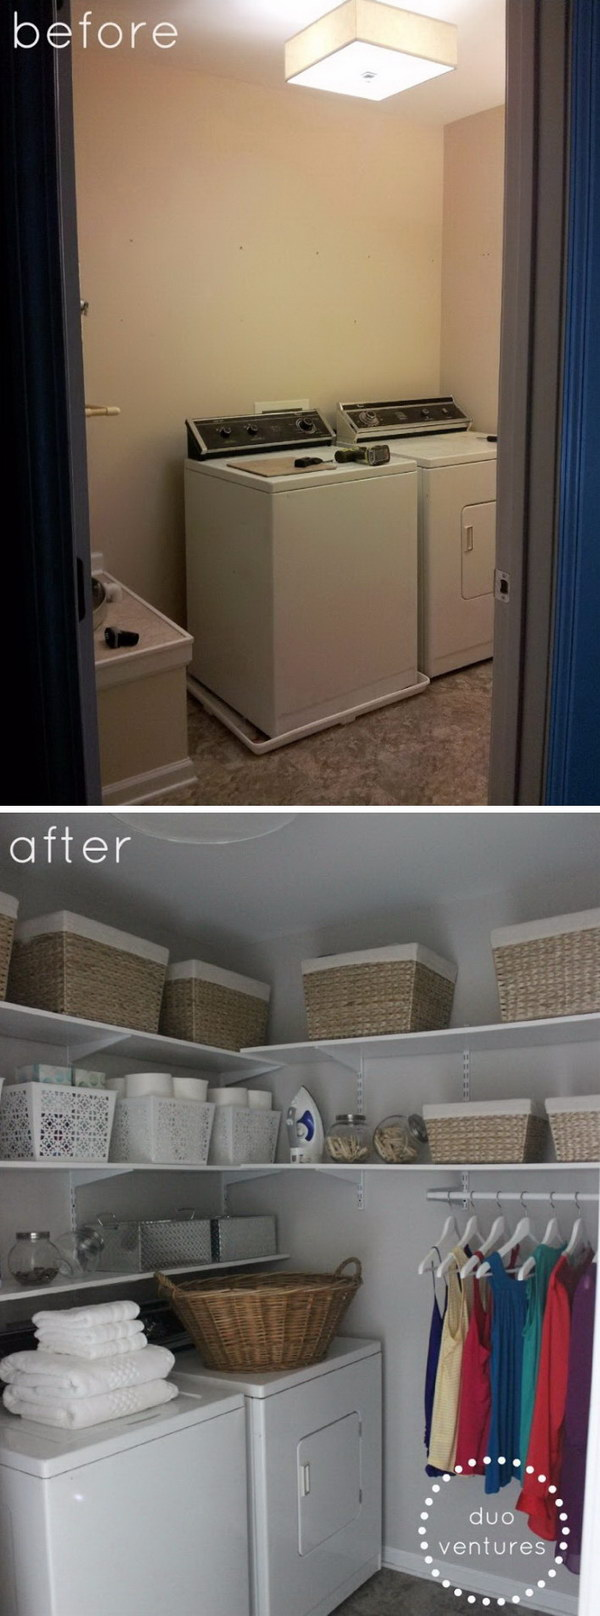 Laundry Room Makeover with Solid White Shelves and the Hanging System for Storage.